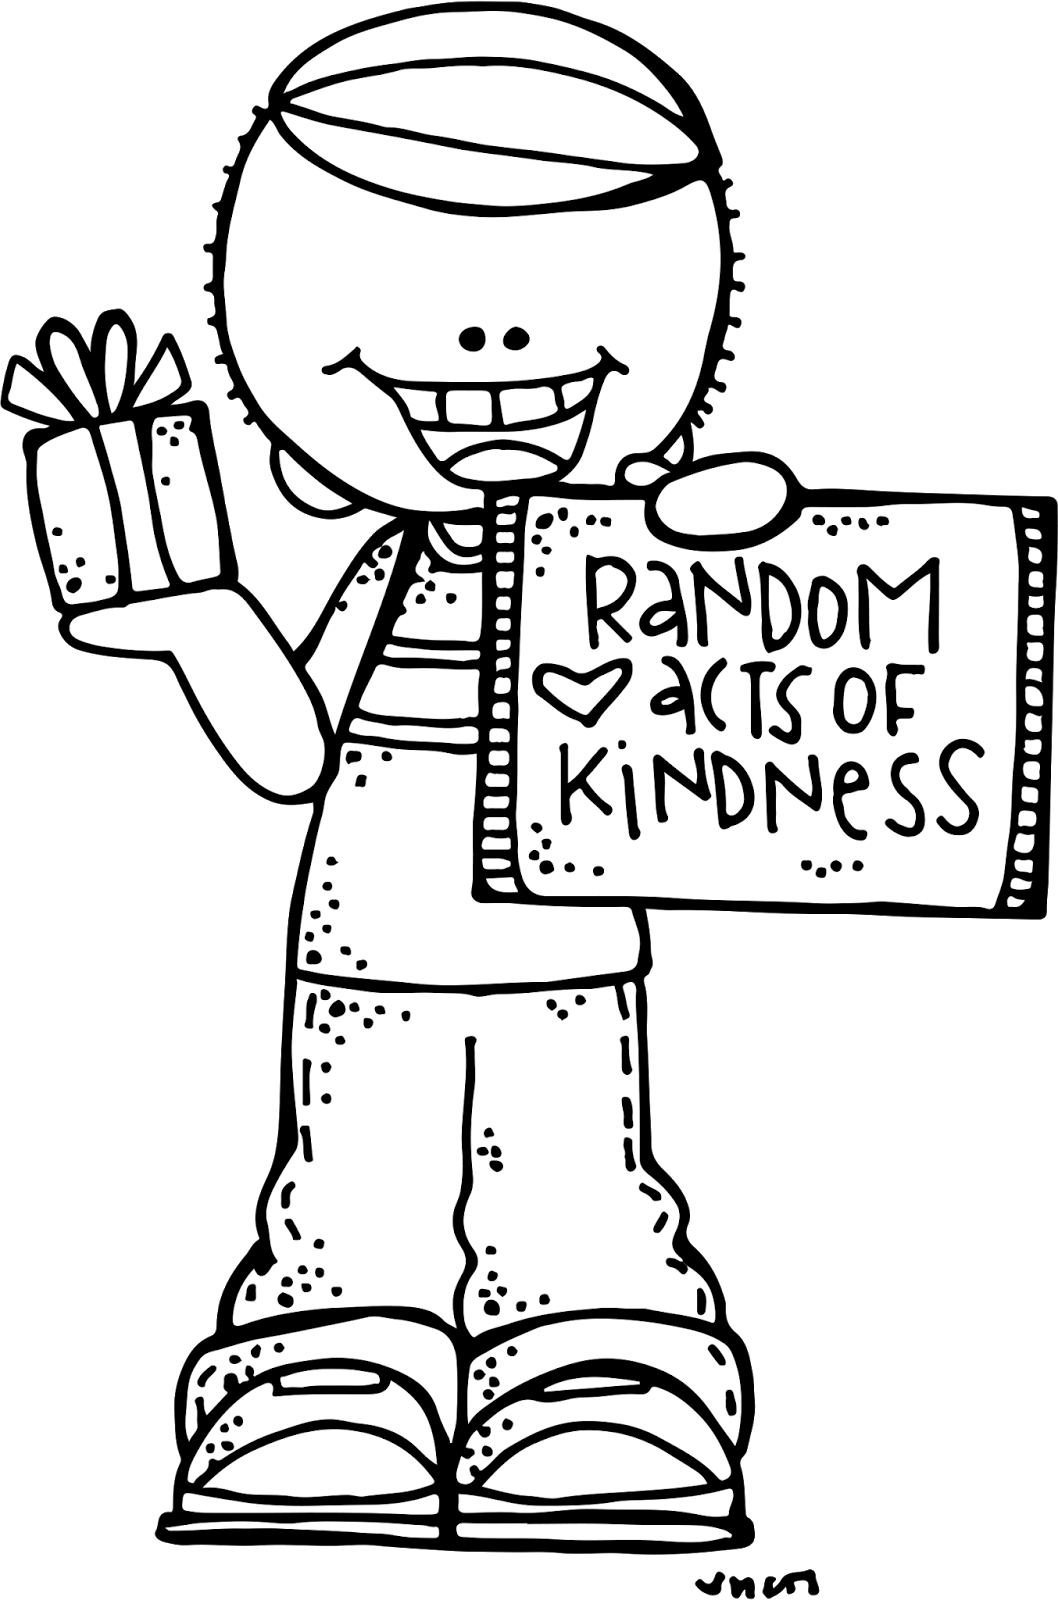 One little tiny Act of Kindness can change a person's whole day.